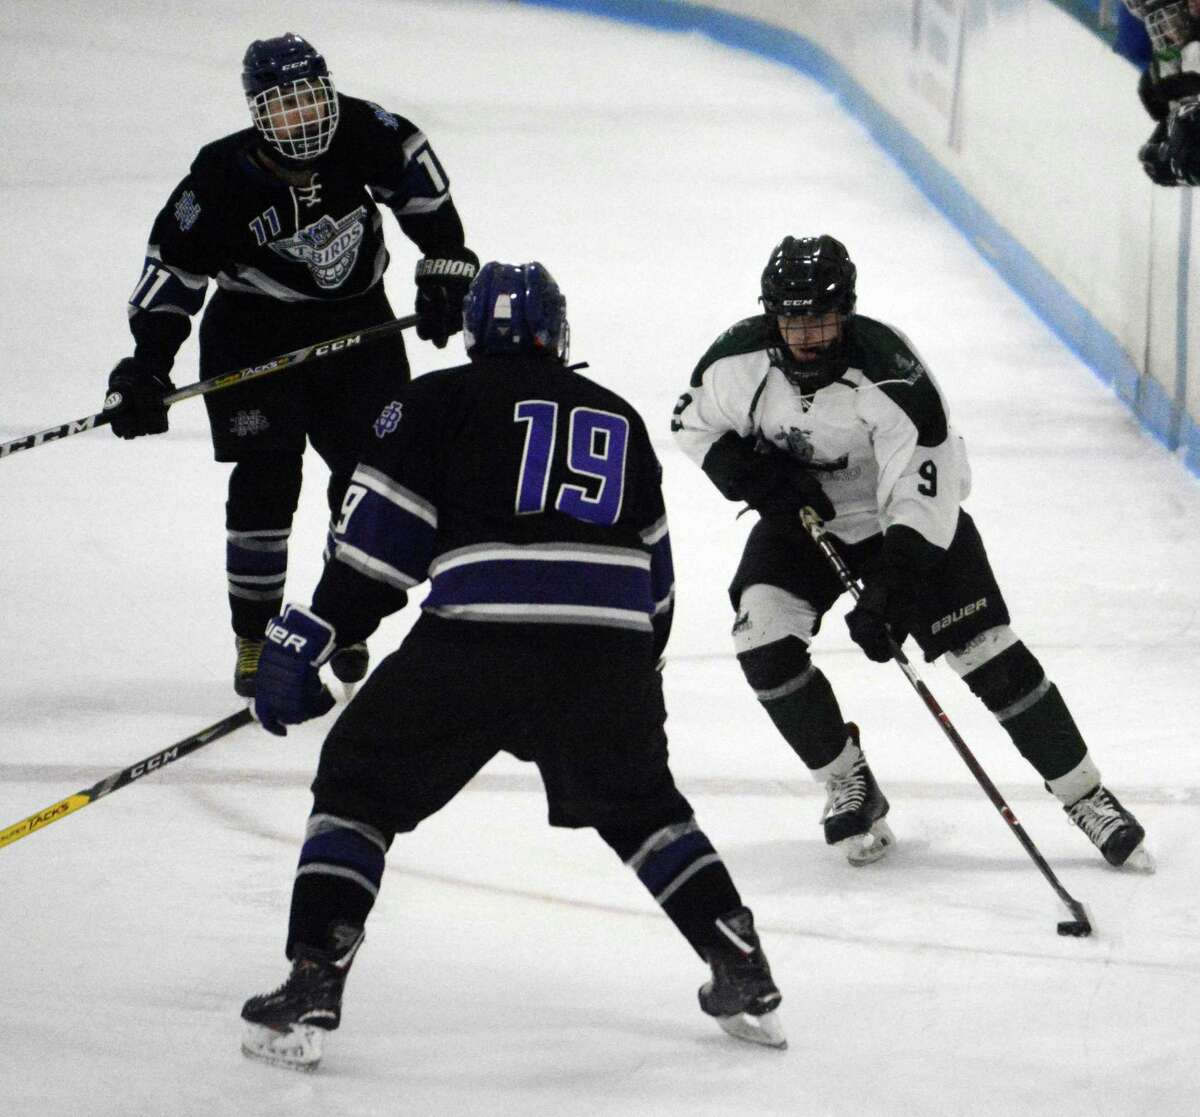 Guilford's Jack Dacey (9) looks to skate past North Branford's Griffin Geist (19) on Jan. 9, 2019 at DiLungo Rink in East Haven, Conn.